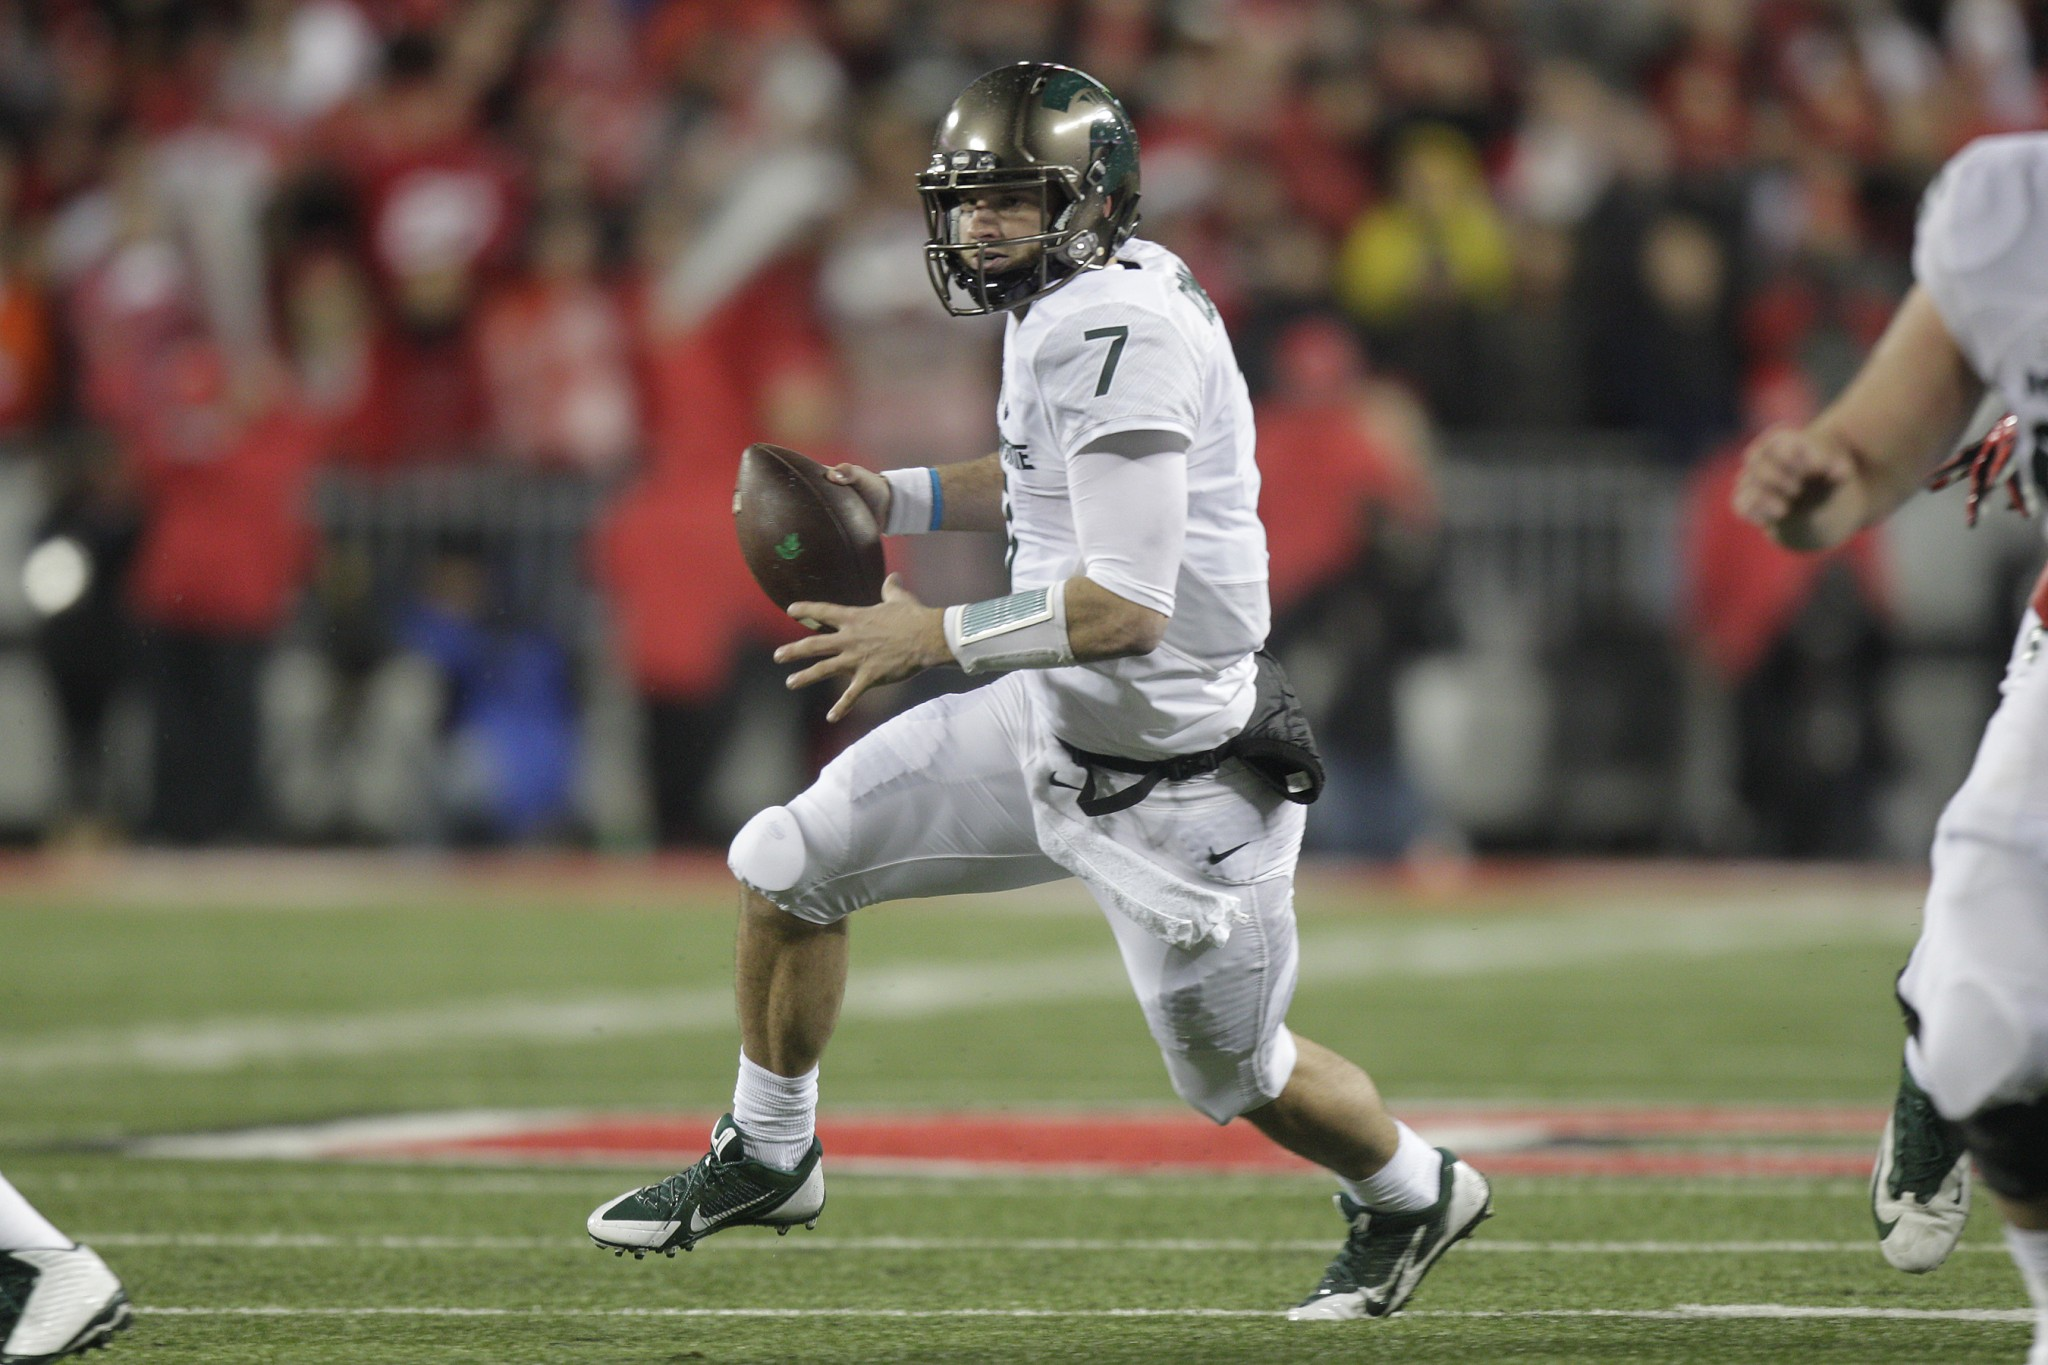 Tyler O'Connor led Michigan State to a win over Ohio State in Columbus. (AP Photo/Jay LaPrete)